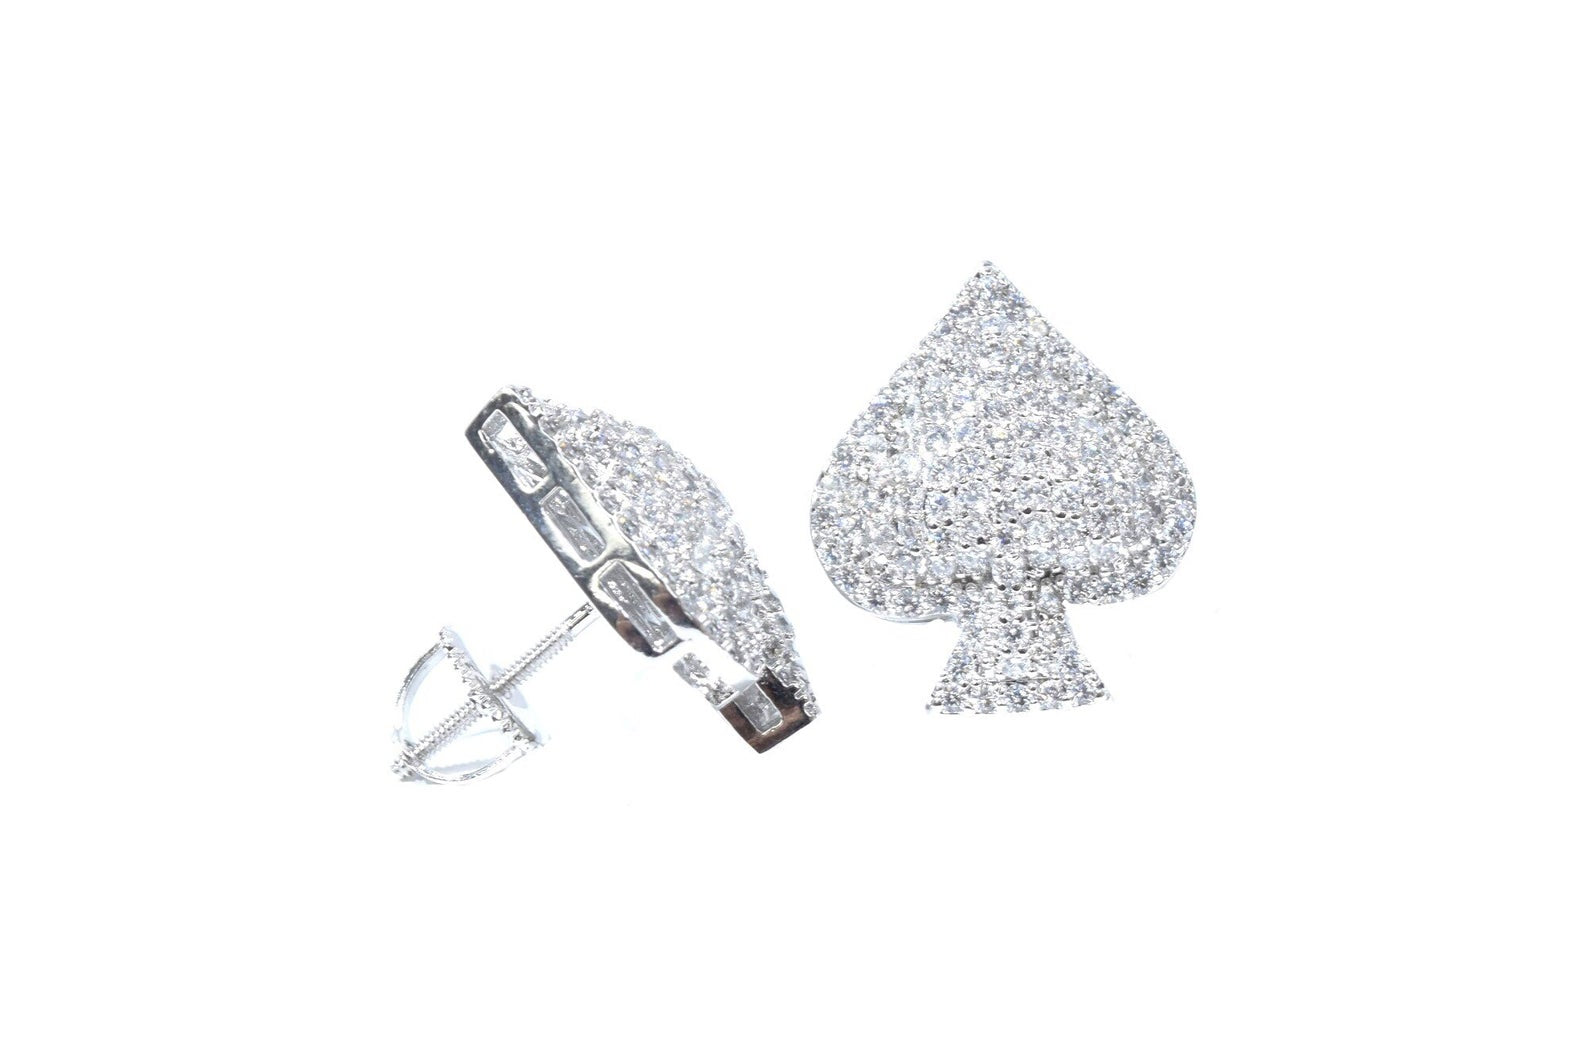 ace-of-spades-white-gold-finish-iced-out-vvs-lab-diamond-earrings-dripwatch.store